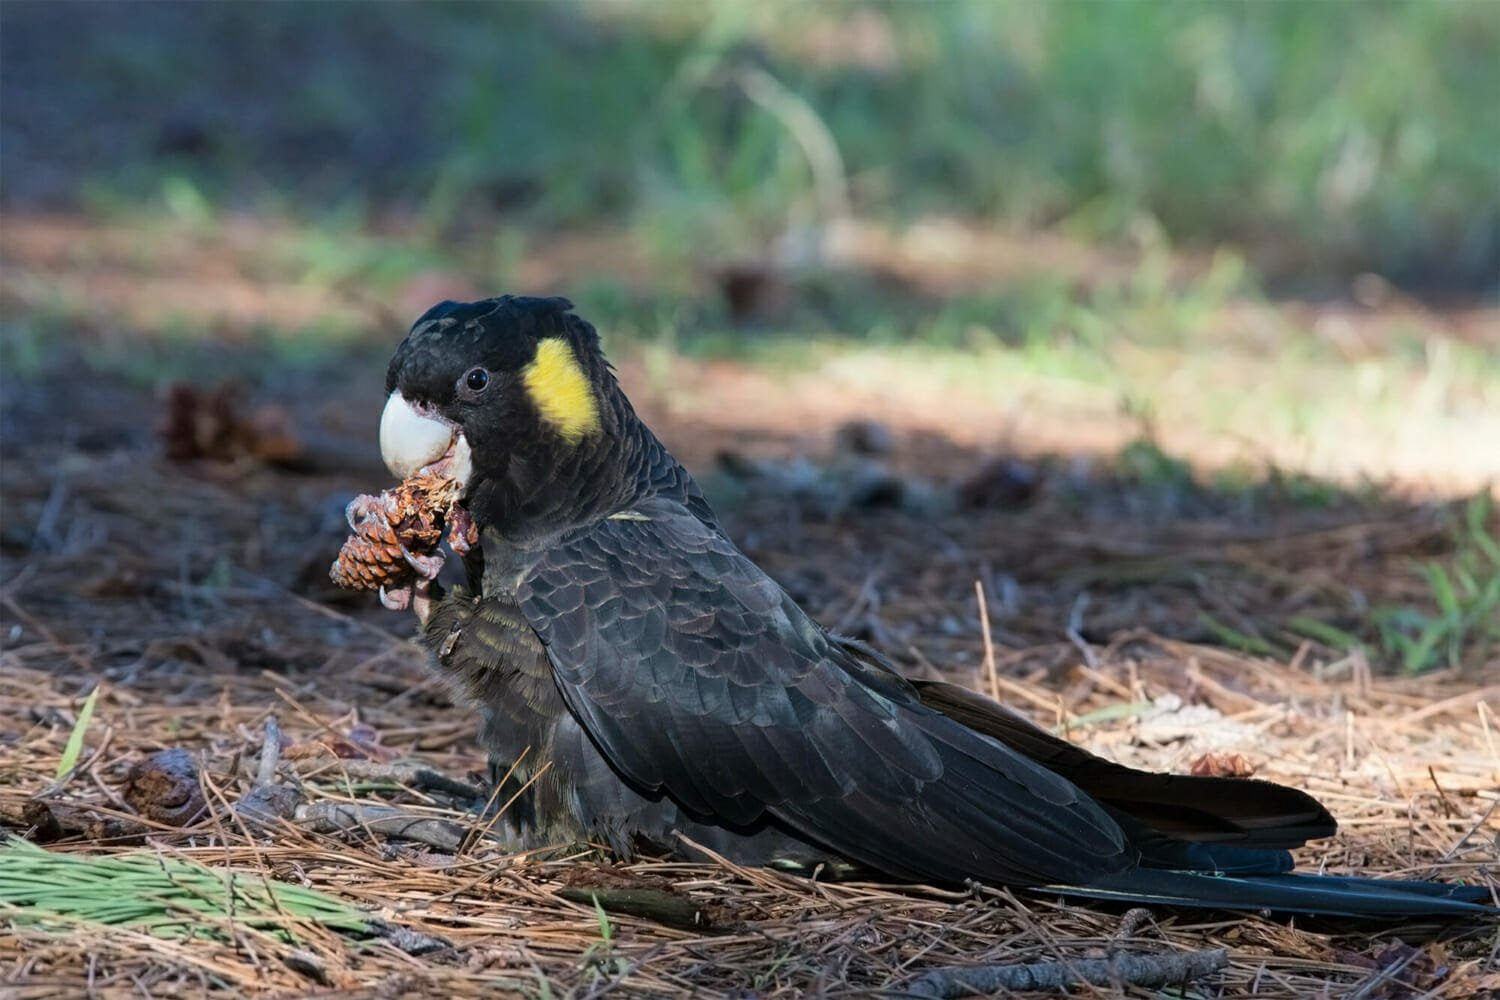 Where to see parrots in Sydney - Female Yellow-tailed black cockatoo